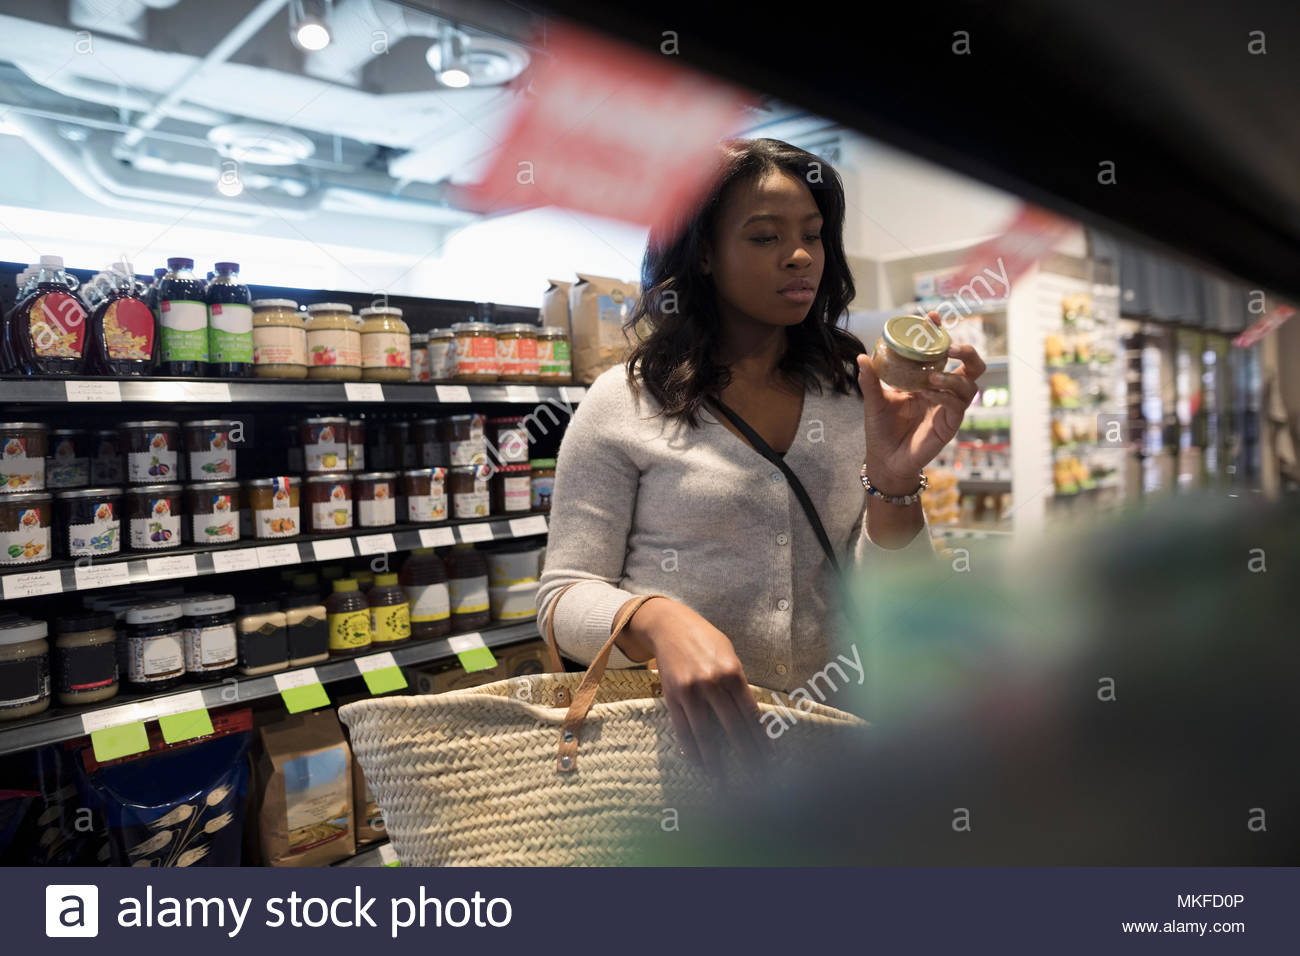 Young woman grocery shopping, reading label on jar in market aisle - Stock Image